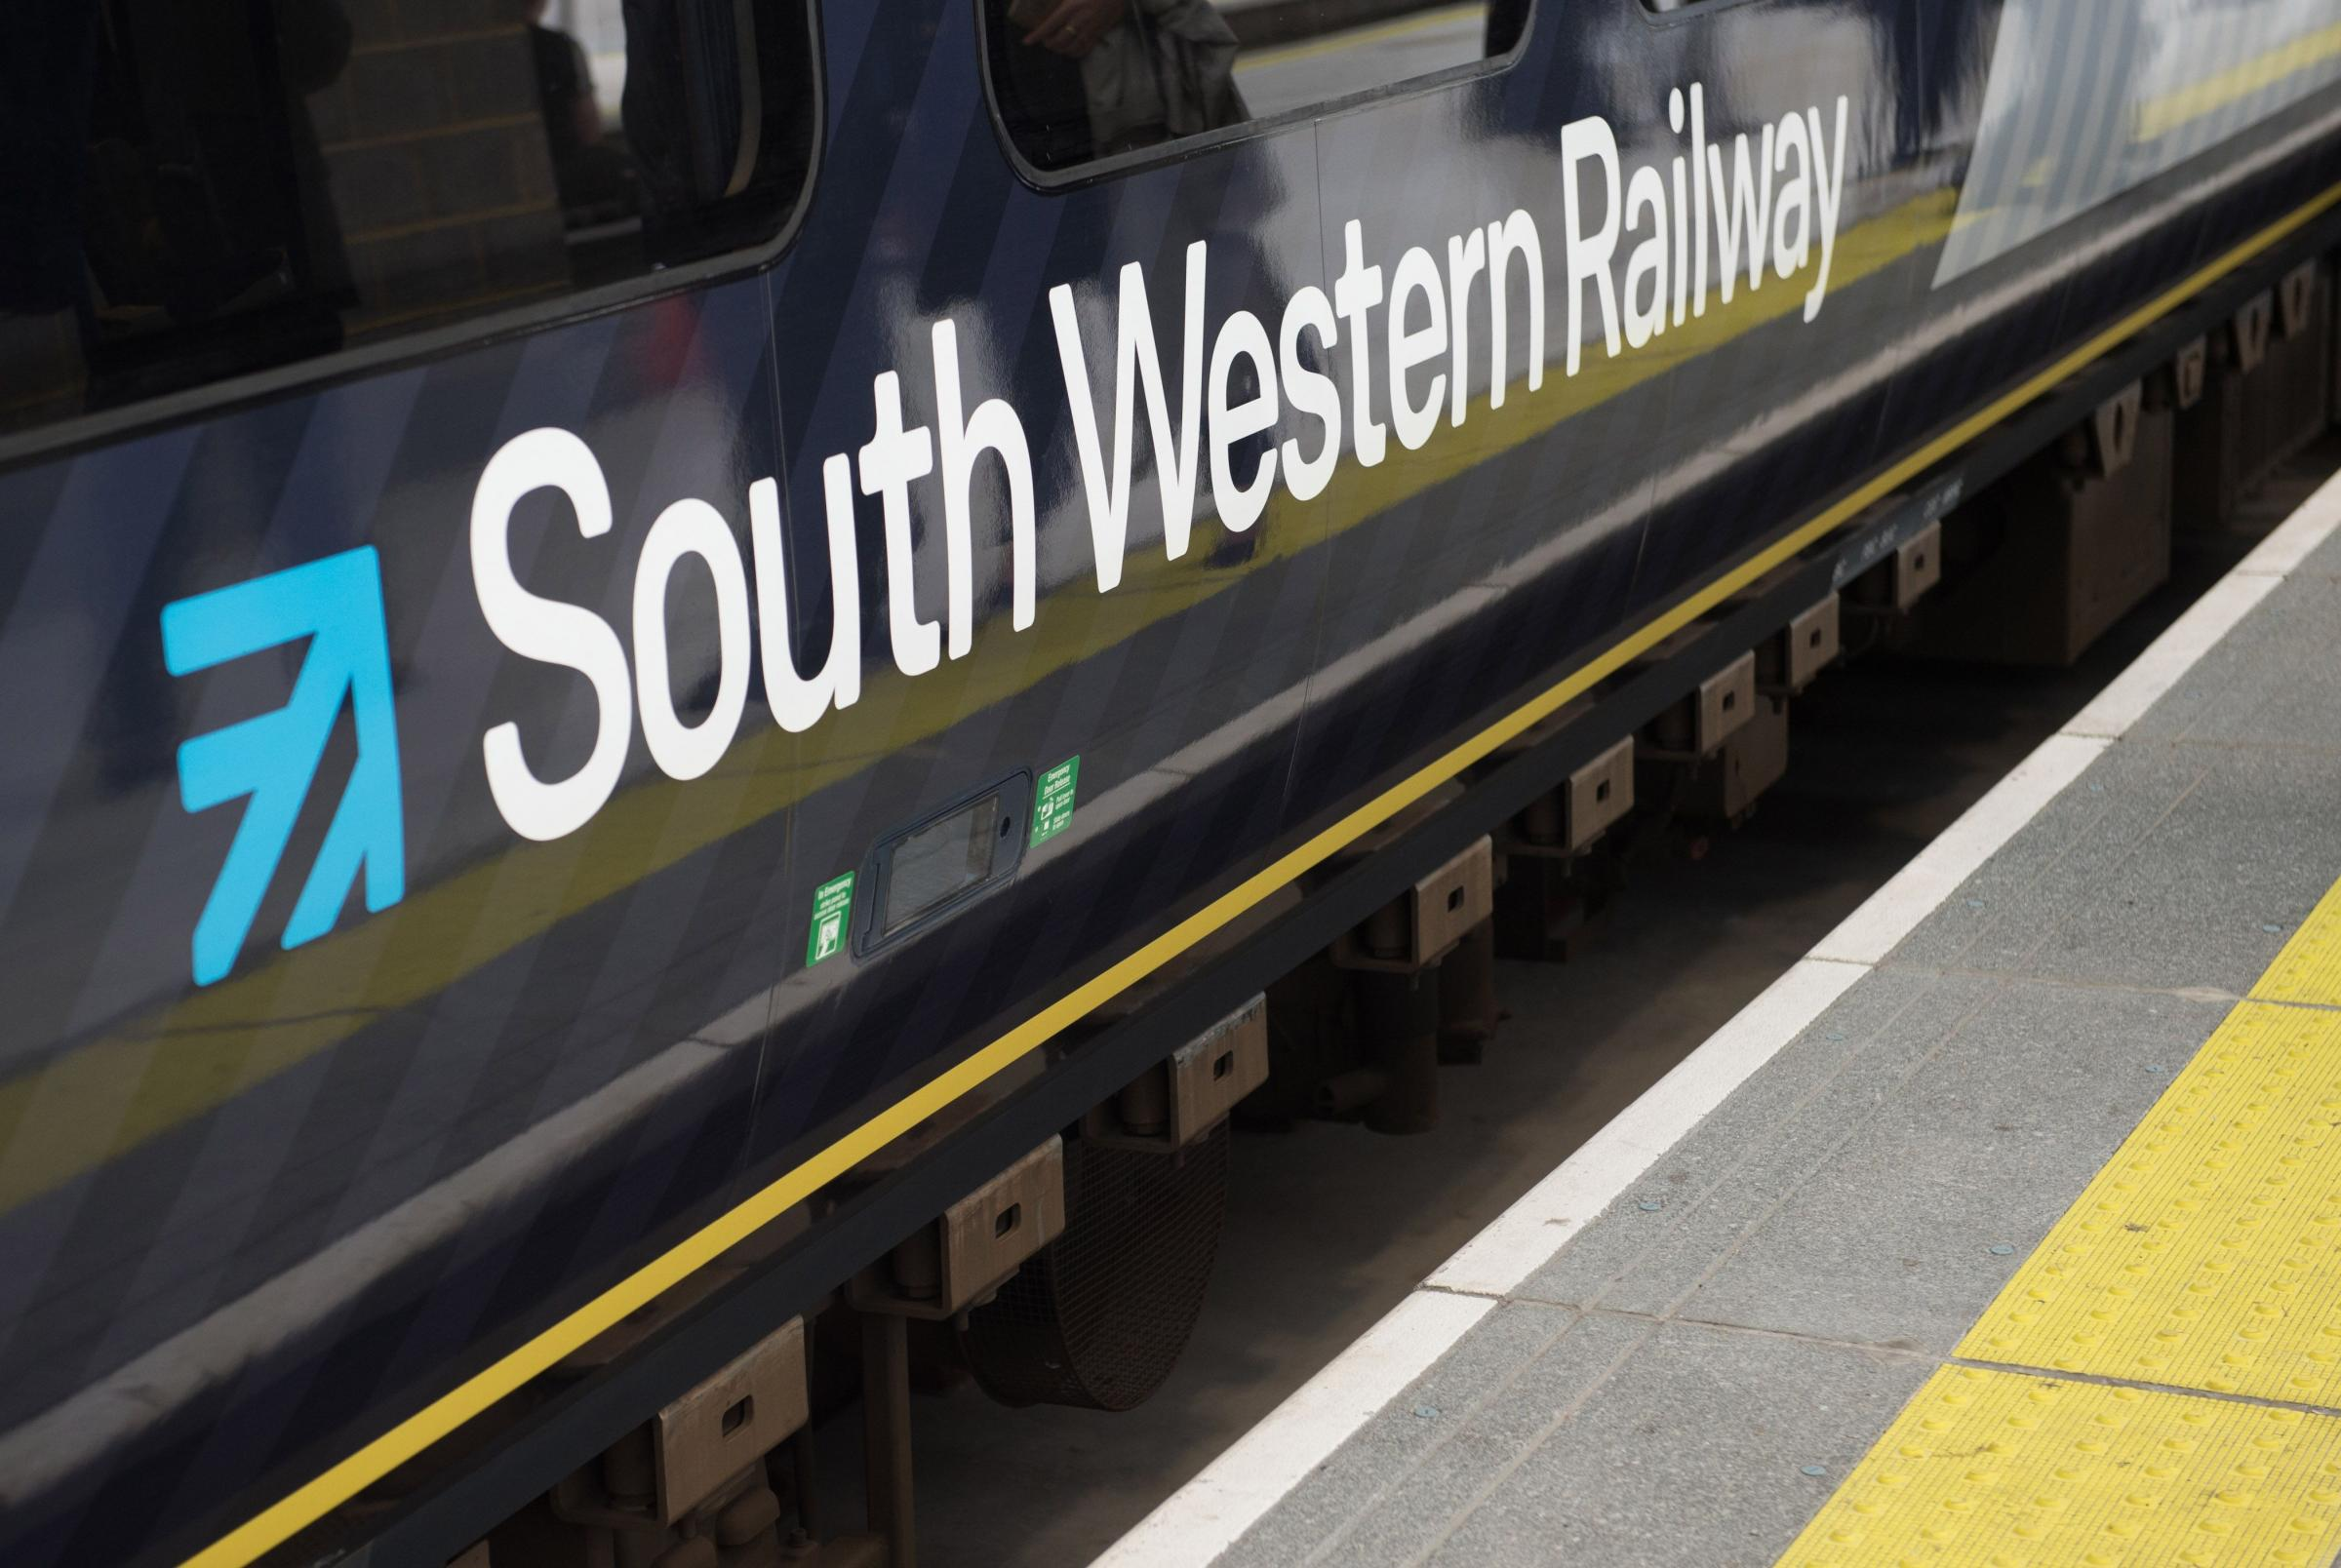 South Western Trains services will run as normal on Saturday